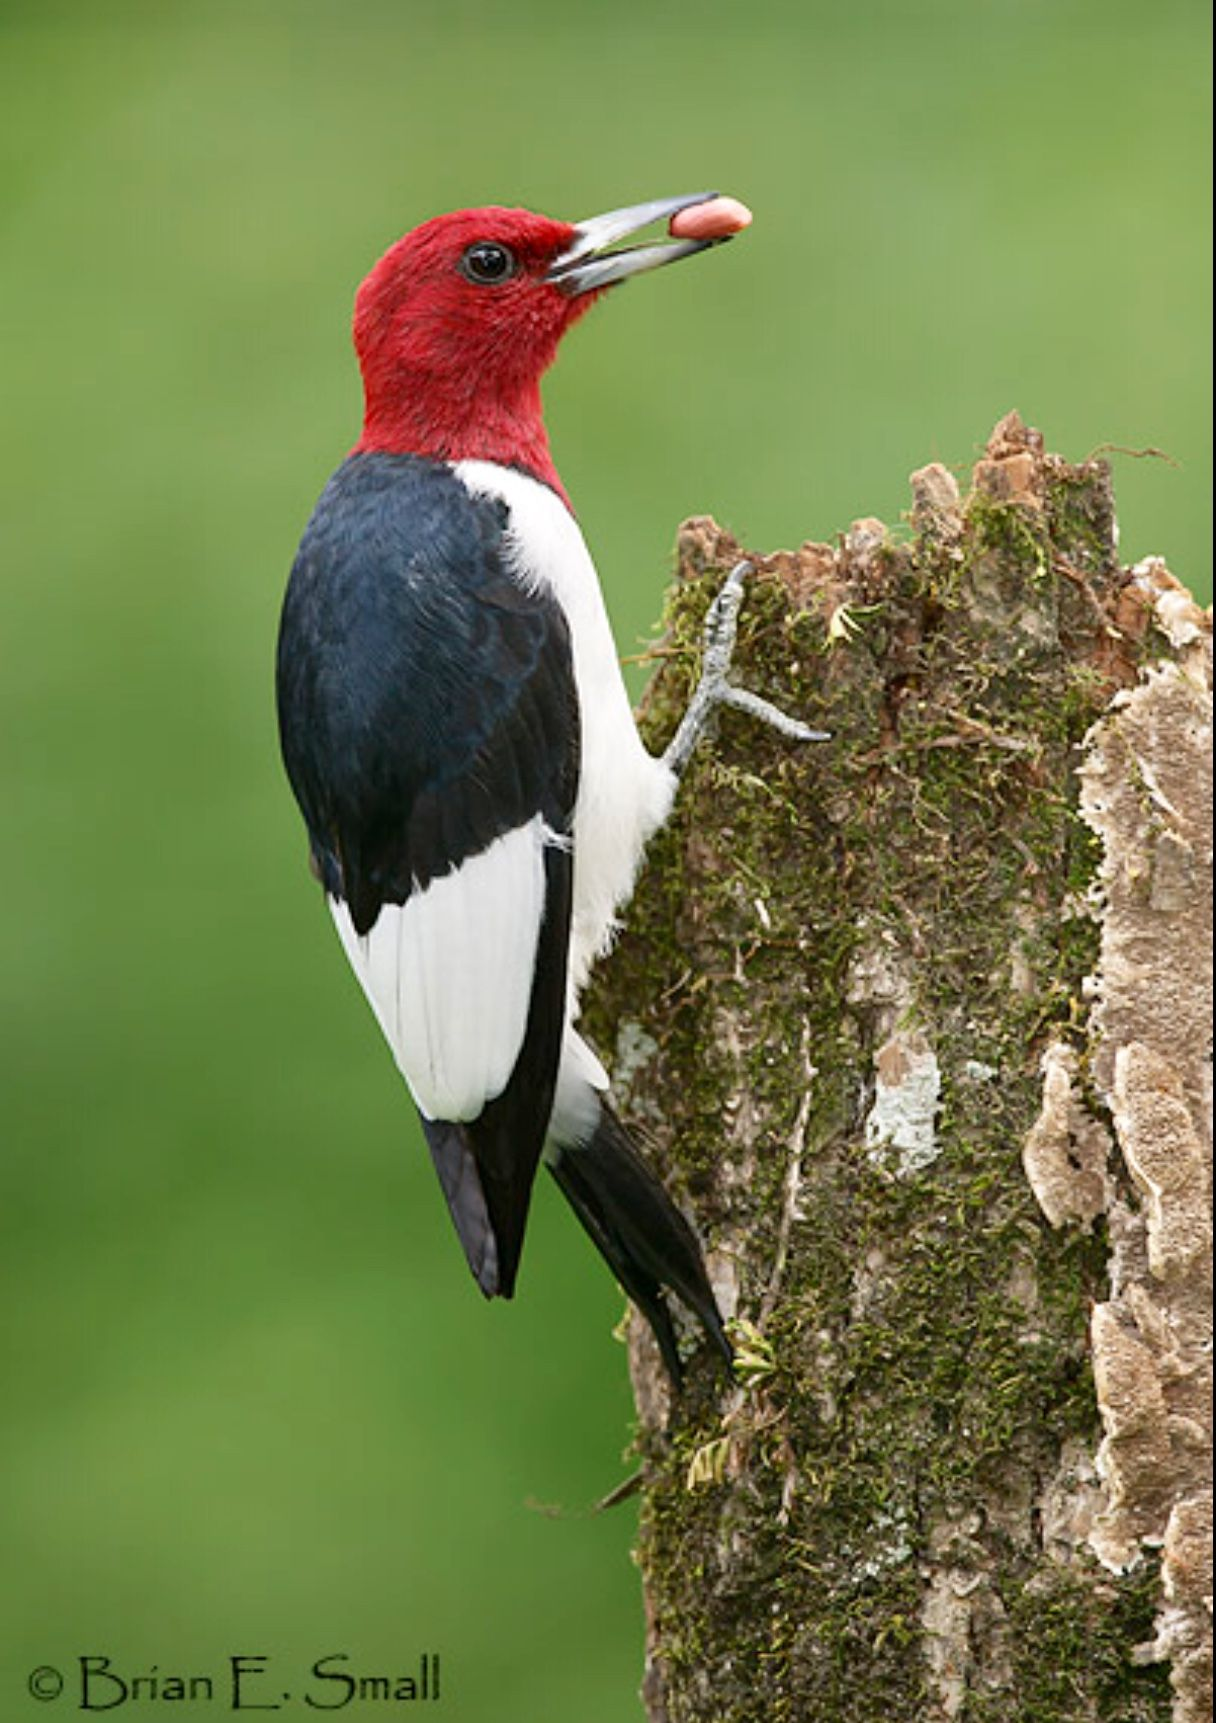 The Beautiful Red Headed Woodpecker (Melanerpes Erythrocephalus) Is Native To Temperate